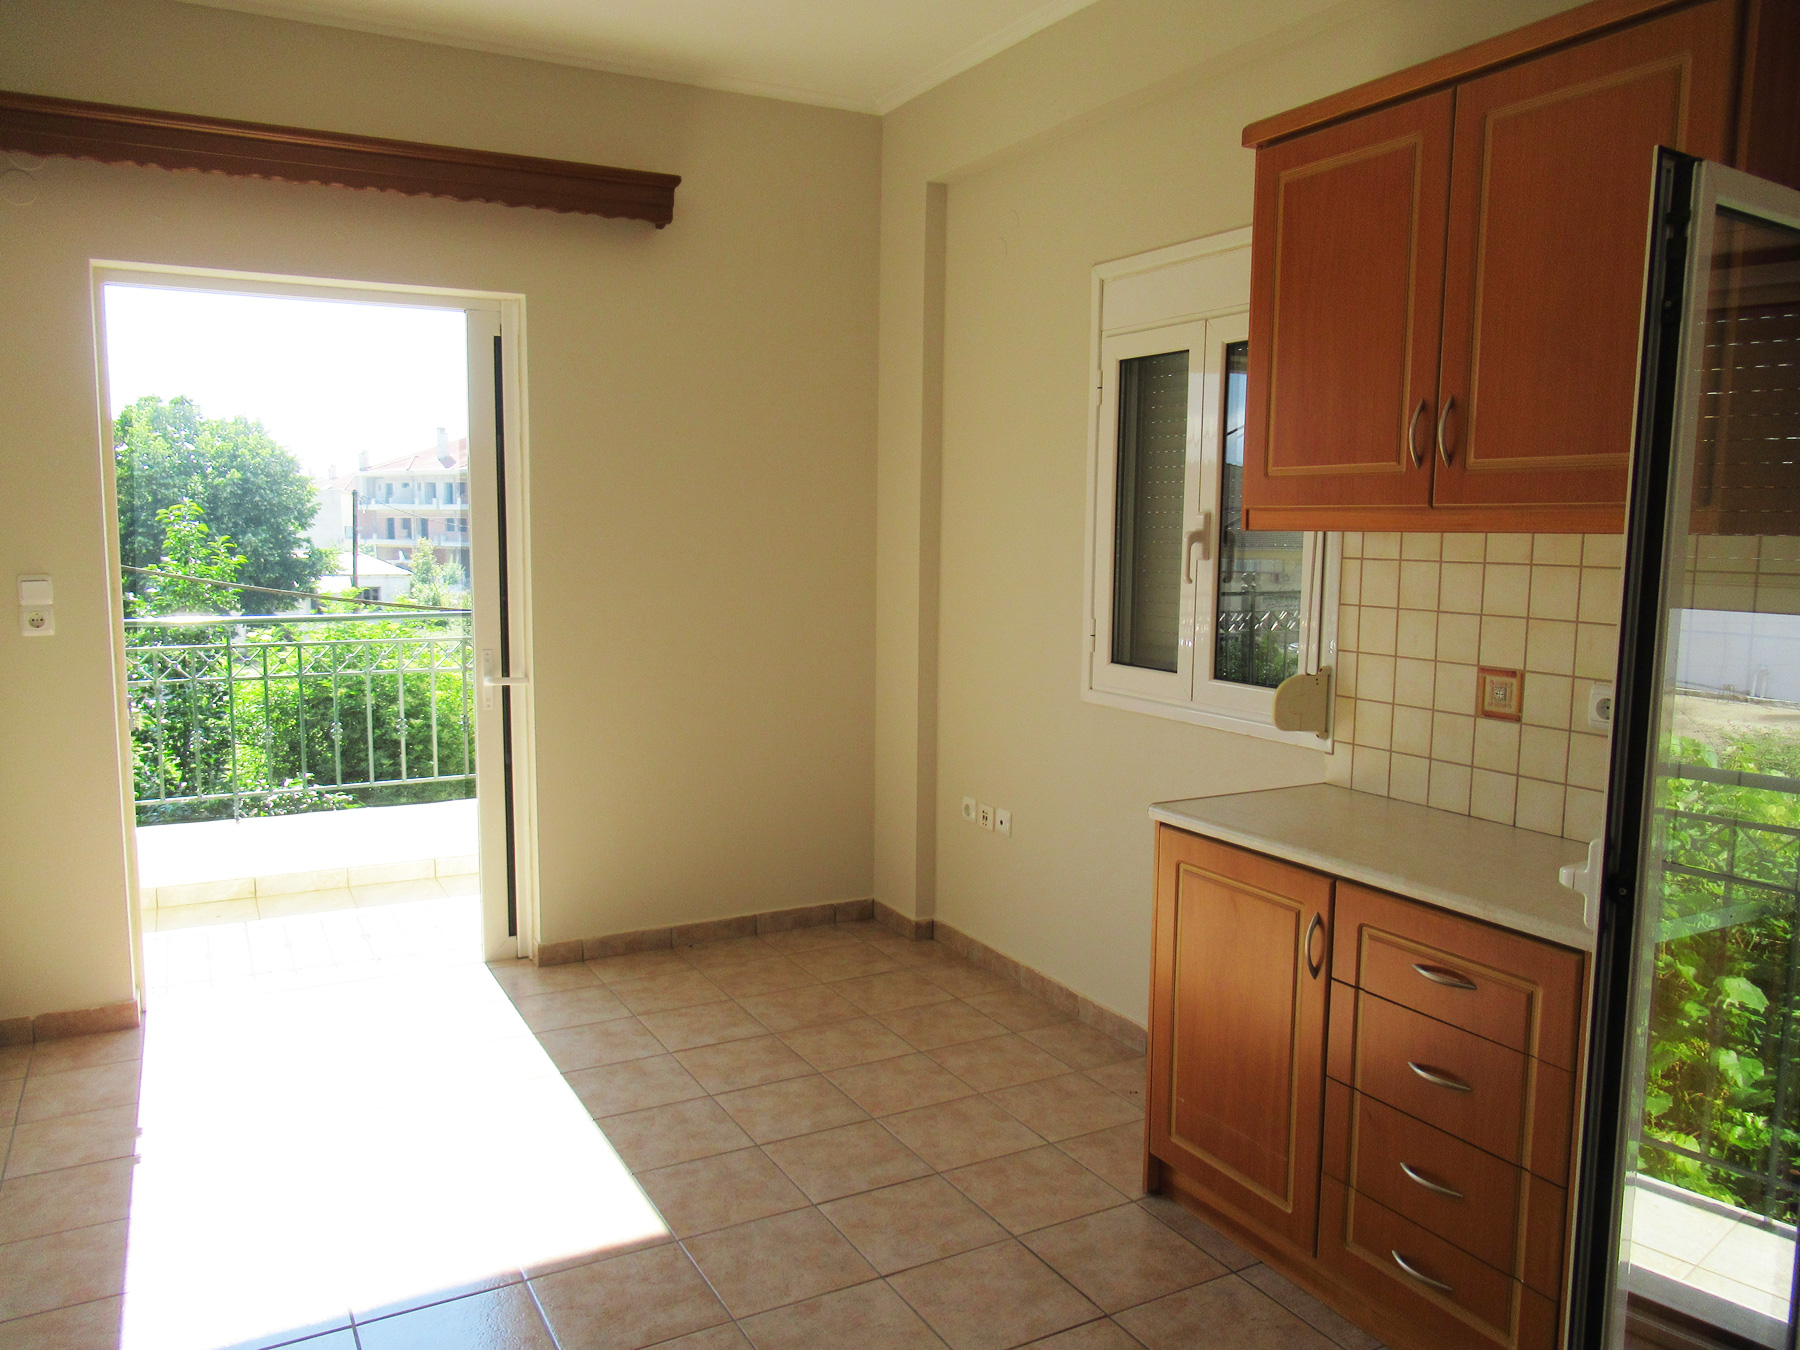 For rent sunny 1 bedroom studio of 38 sq.m. on the 1st floor in the center of Ioannina